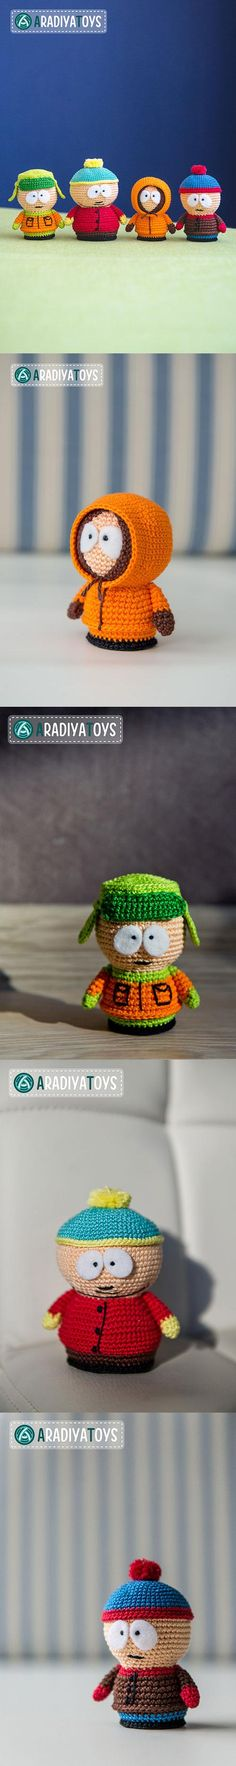 South Park amigurumis patterns